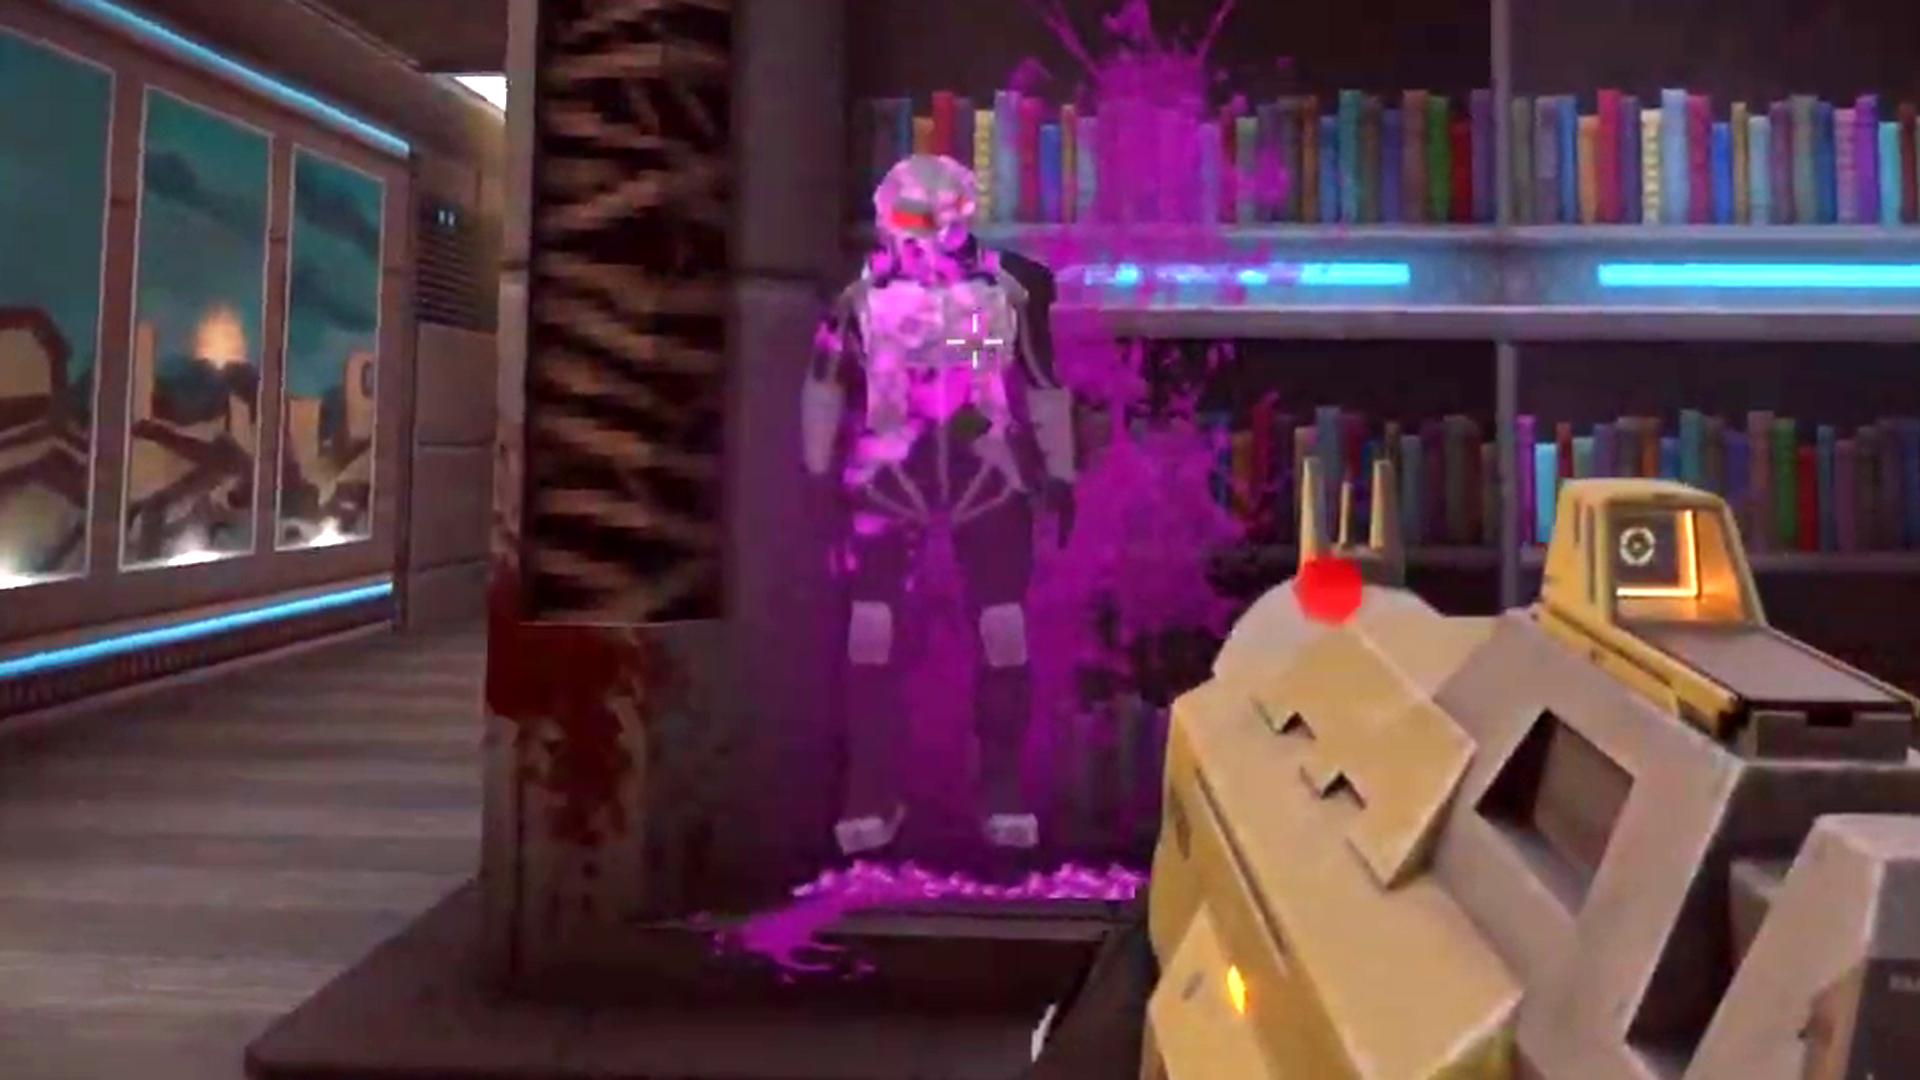 F.E.A.R.-inspired FPS Selaco adds its iconic Nailgun and a killer banana